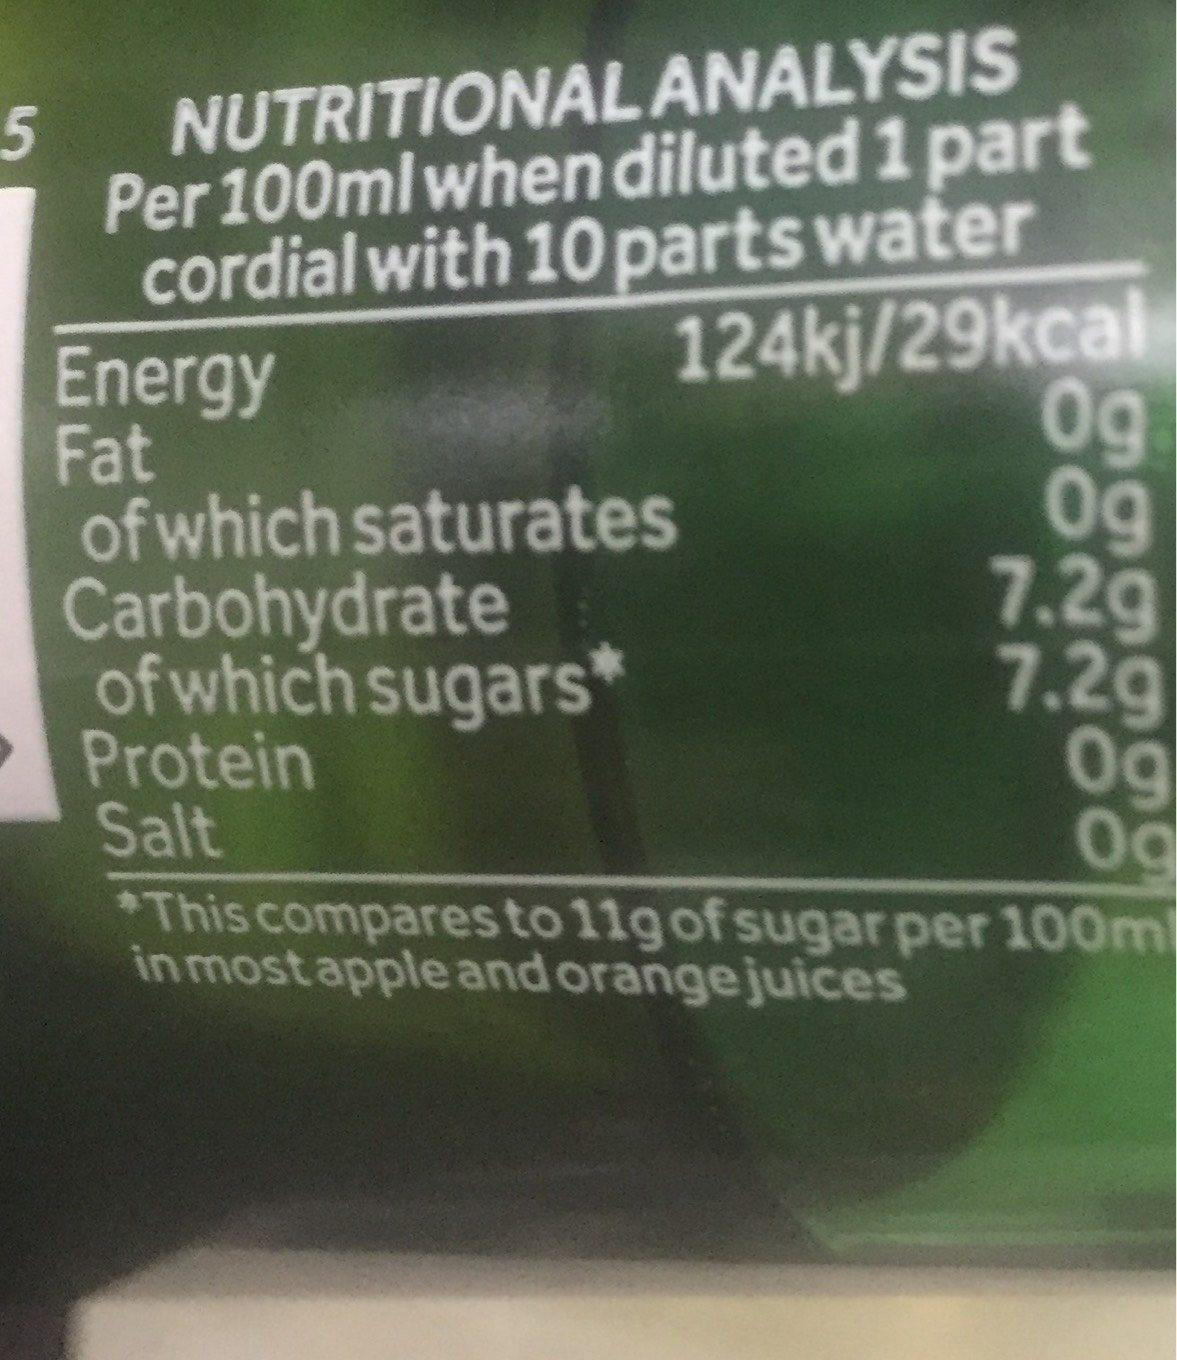 Bottle of Green Cordial (Handpicked Elderflower) - Nutrition facts